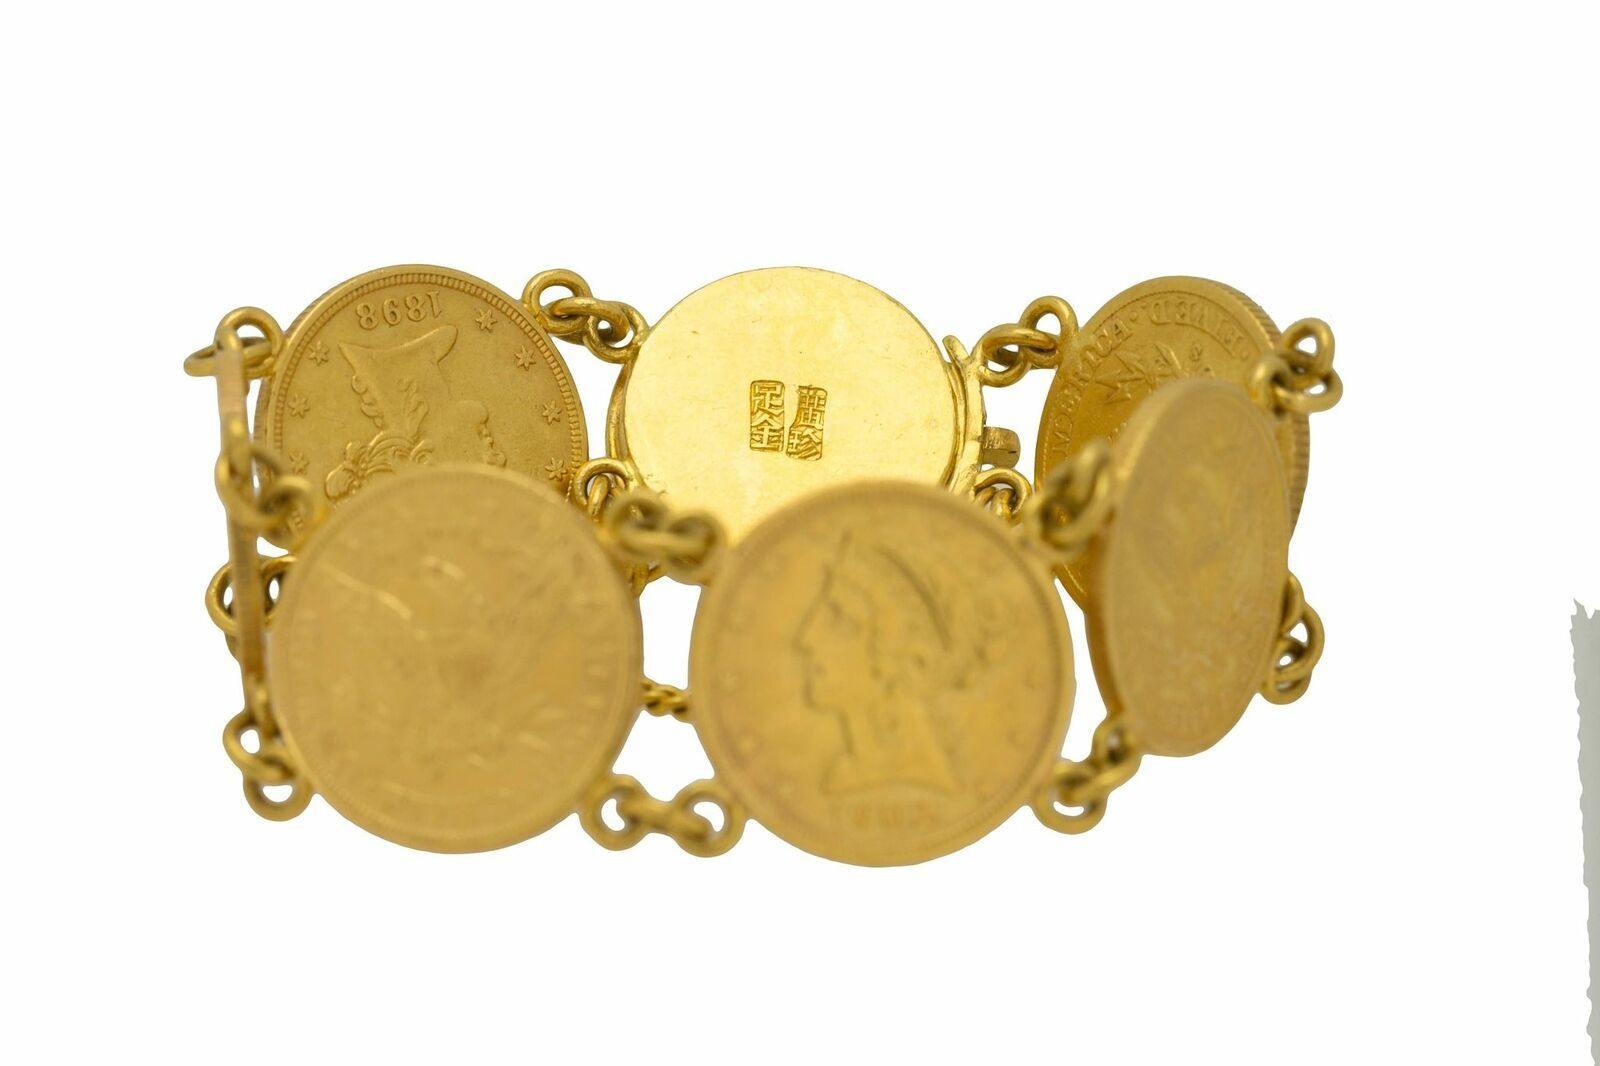 1900s Antique Estate 22k Gold Liberty Head $5 Gold Coin Gypsy Bracelet